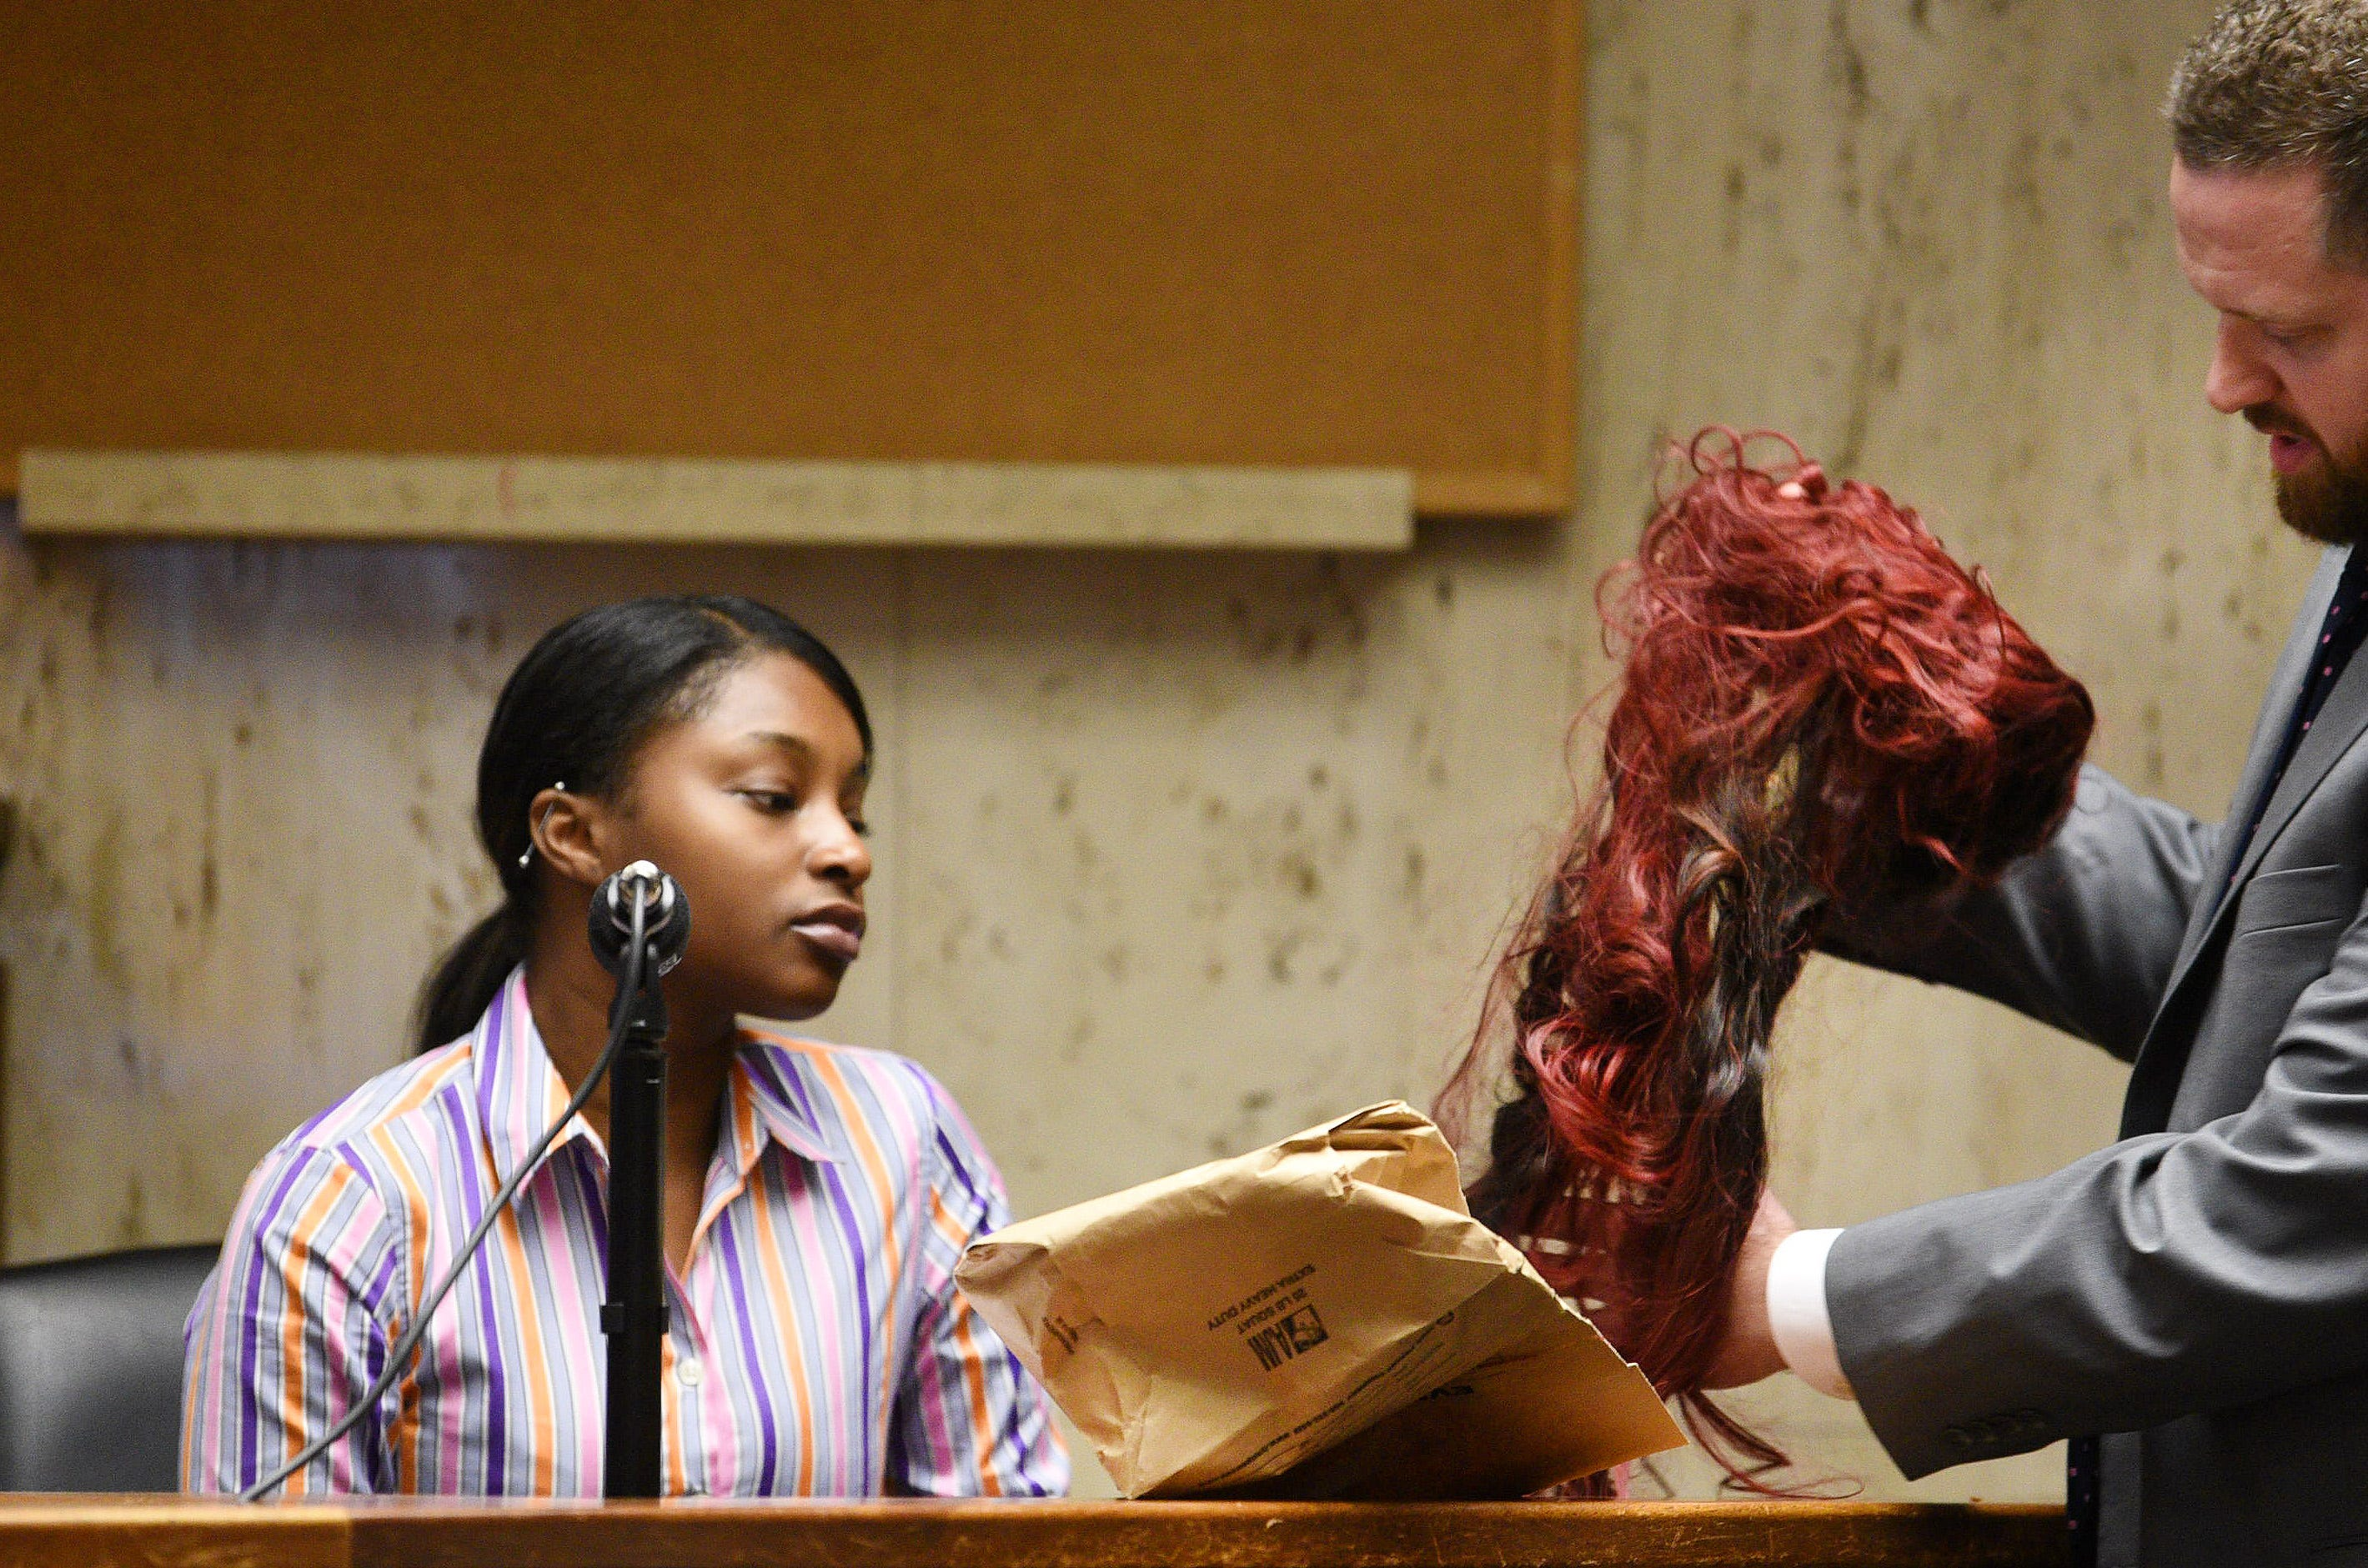 LaMia Brown looks at a hair extension worn by Sarah Butler on during Khalil Wheeler-Weaver's trial in Essex County Court on Oct. 31, 2019.